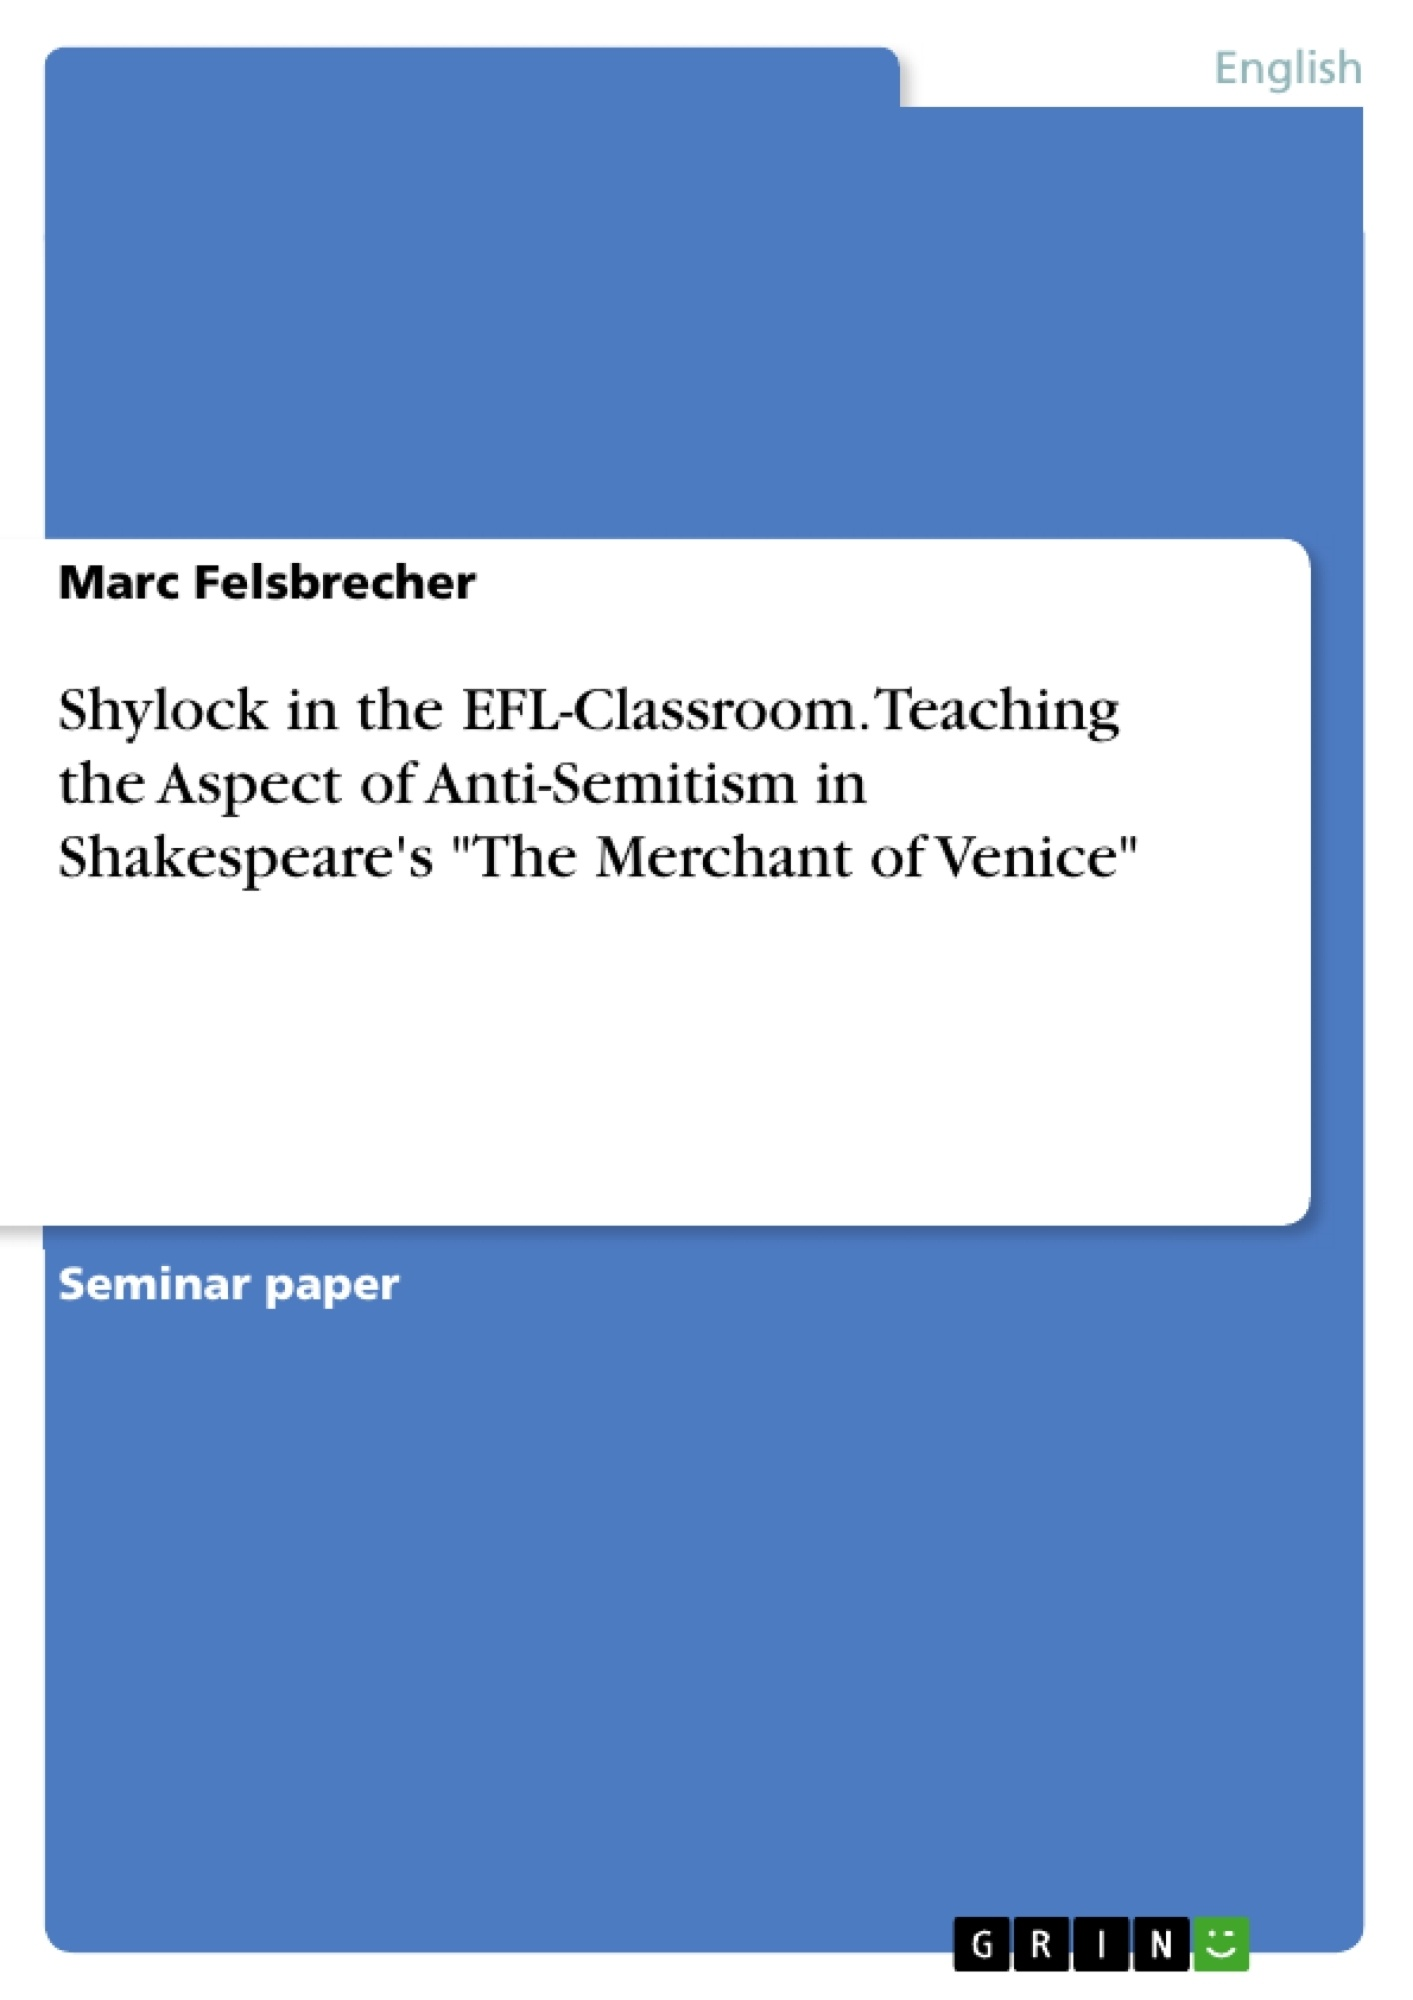 """Title: Shylock in the EFL-Classroom. Teaching the Aspect of Anti-Semitism in Shakespeare's """"The Merchant of Venice"""""""